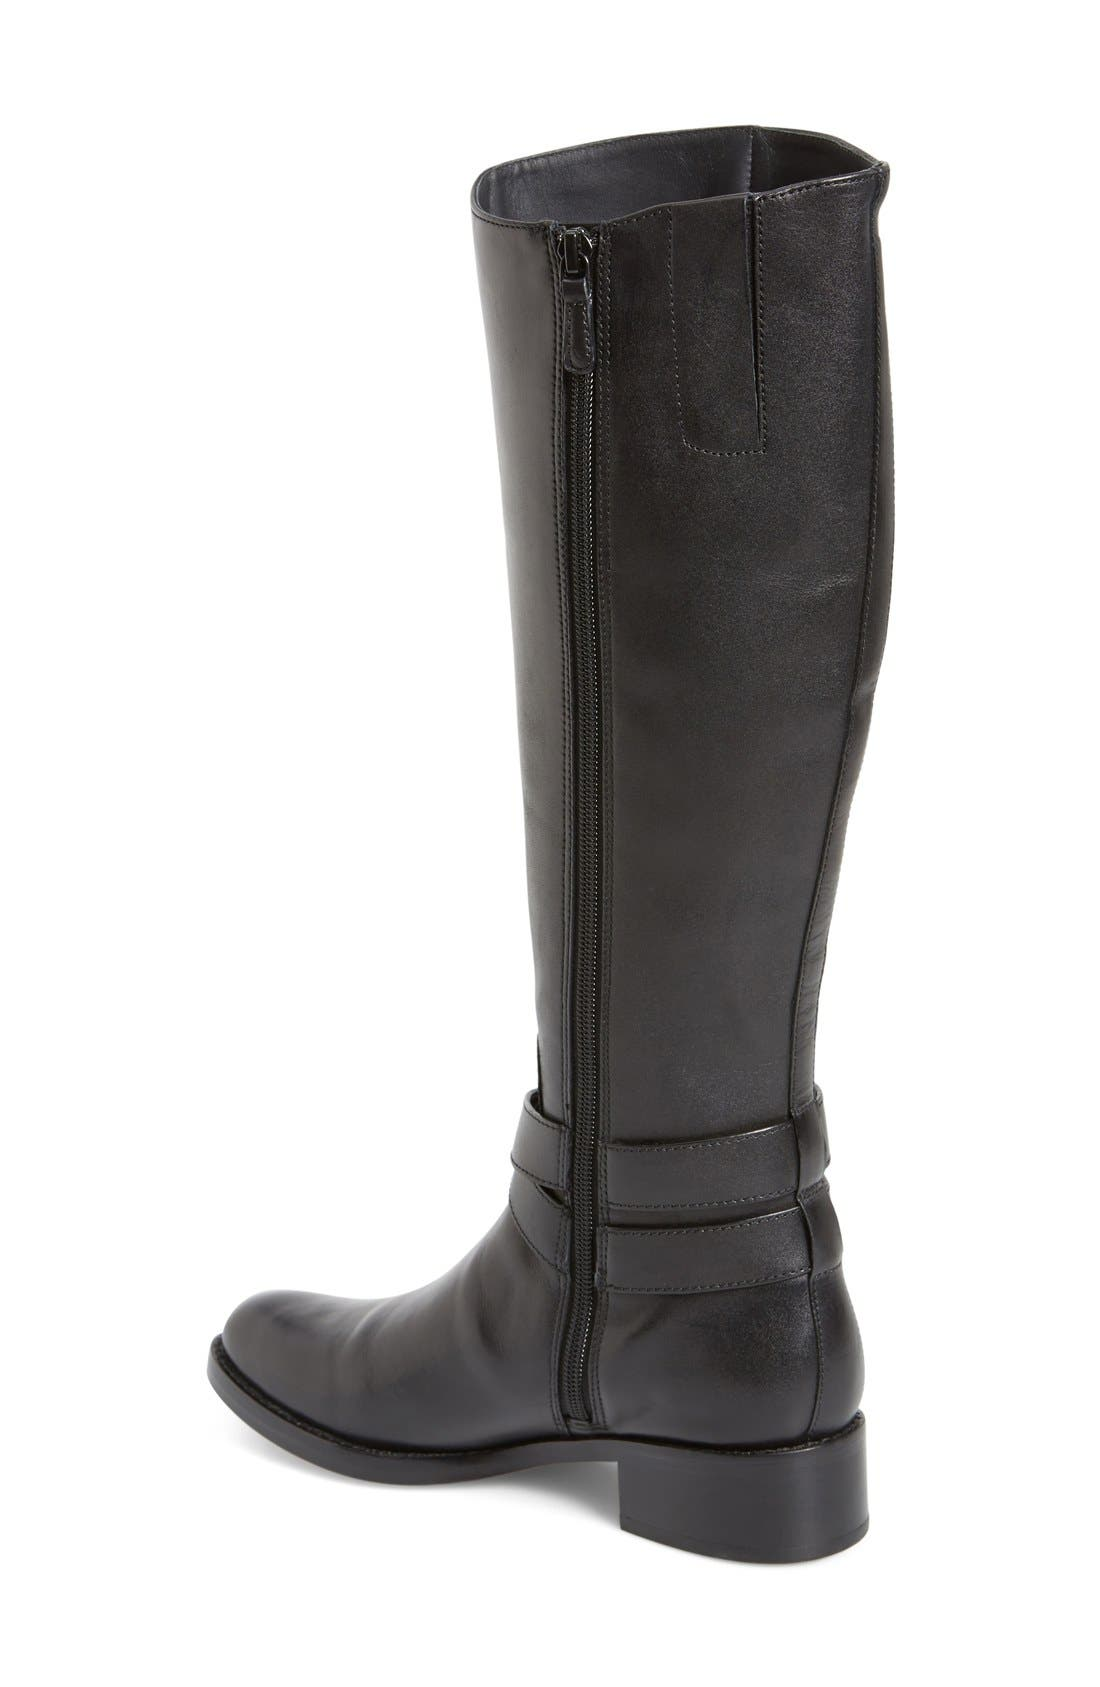 COLE HAAN,                             'Briarcliff' Riding Boot,                             Alternate thumbnail 2, color,                             001